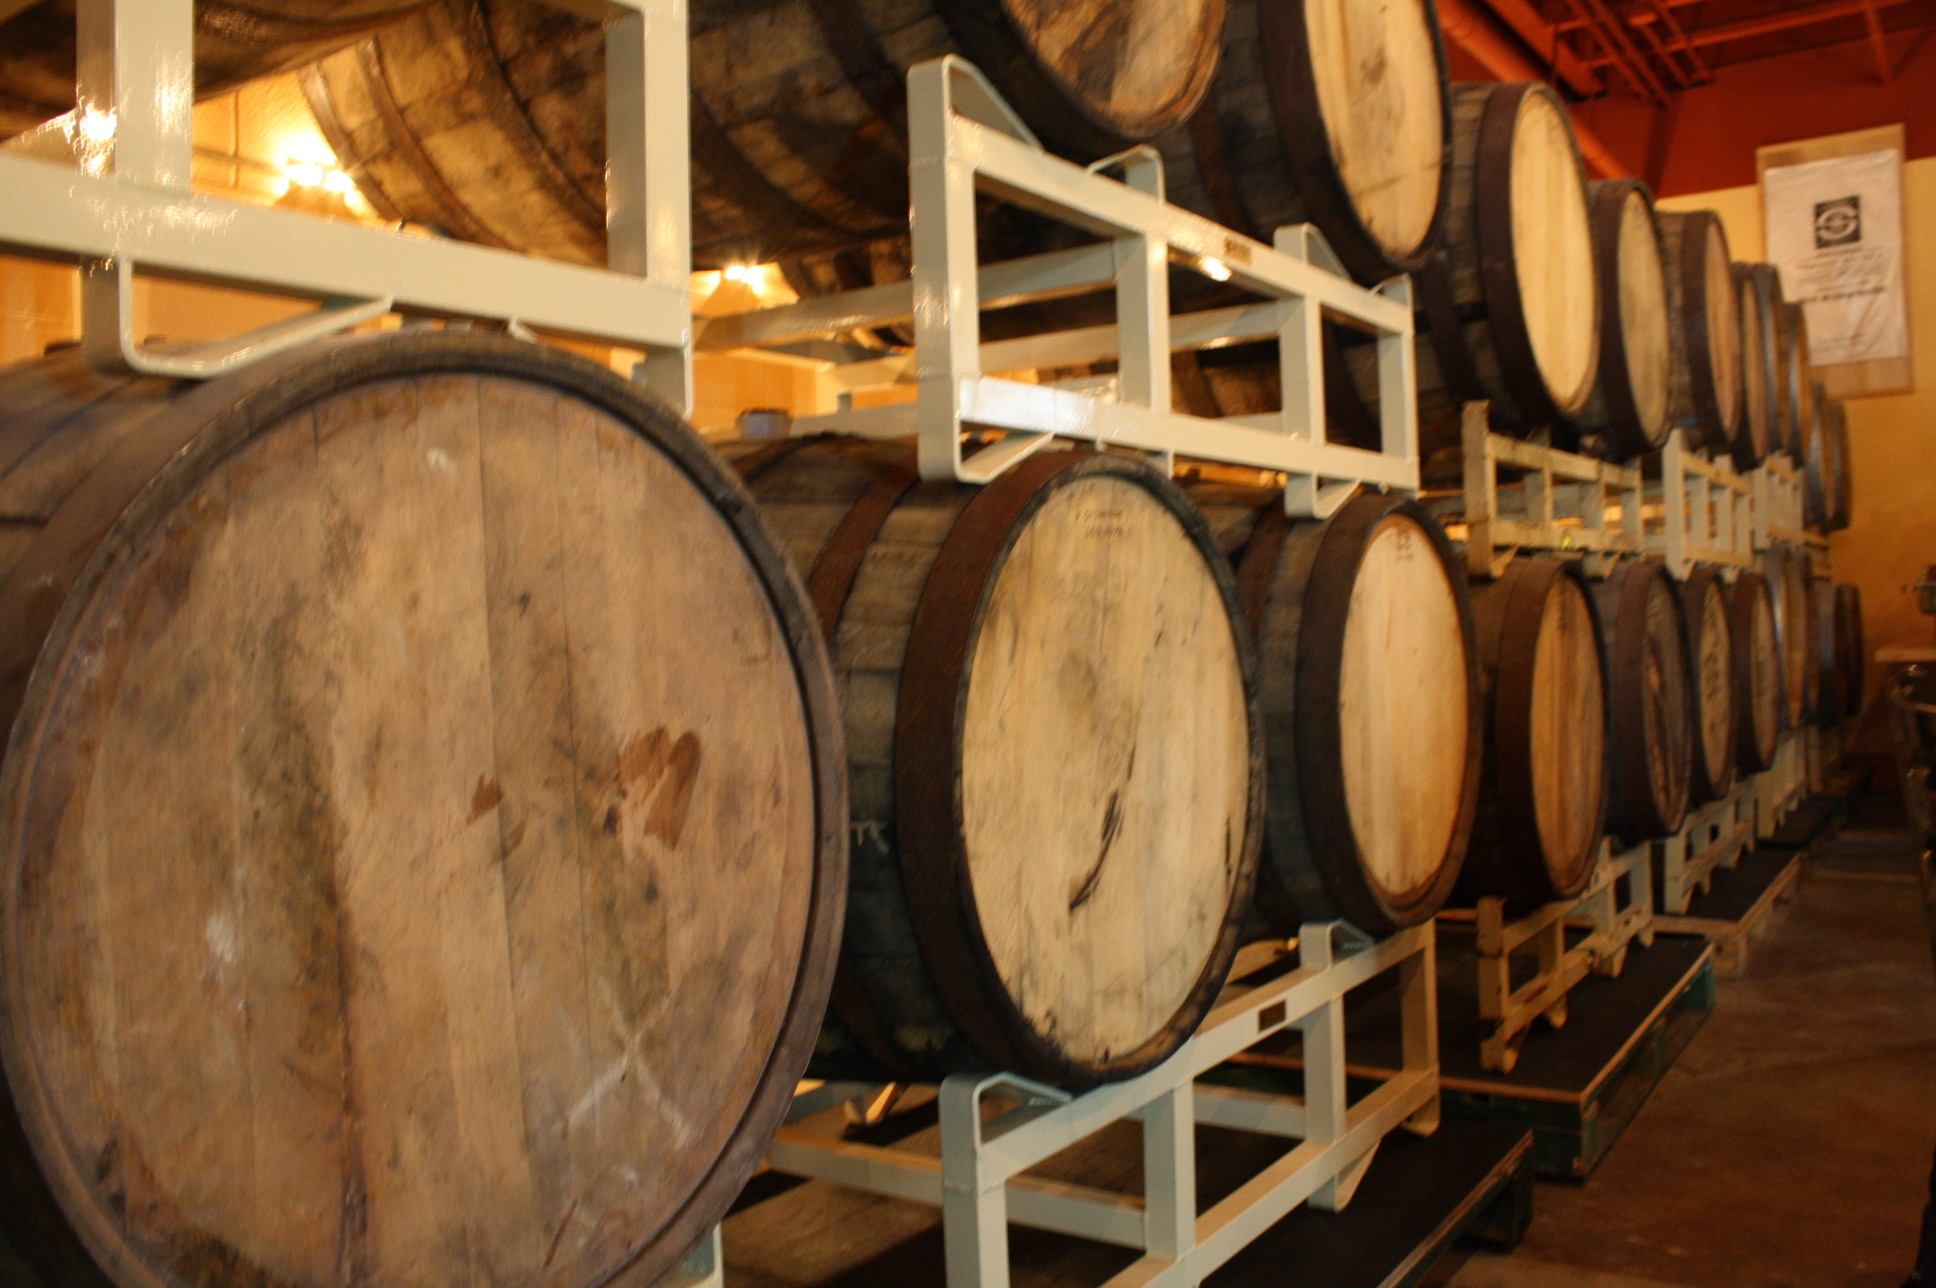 Barrels filled with Lompoc brew at the 5th Quadrant Side Bar